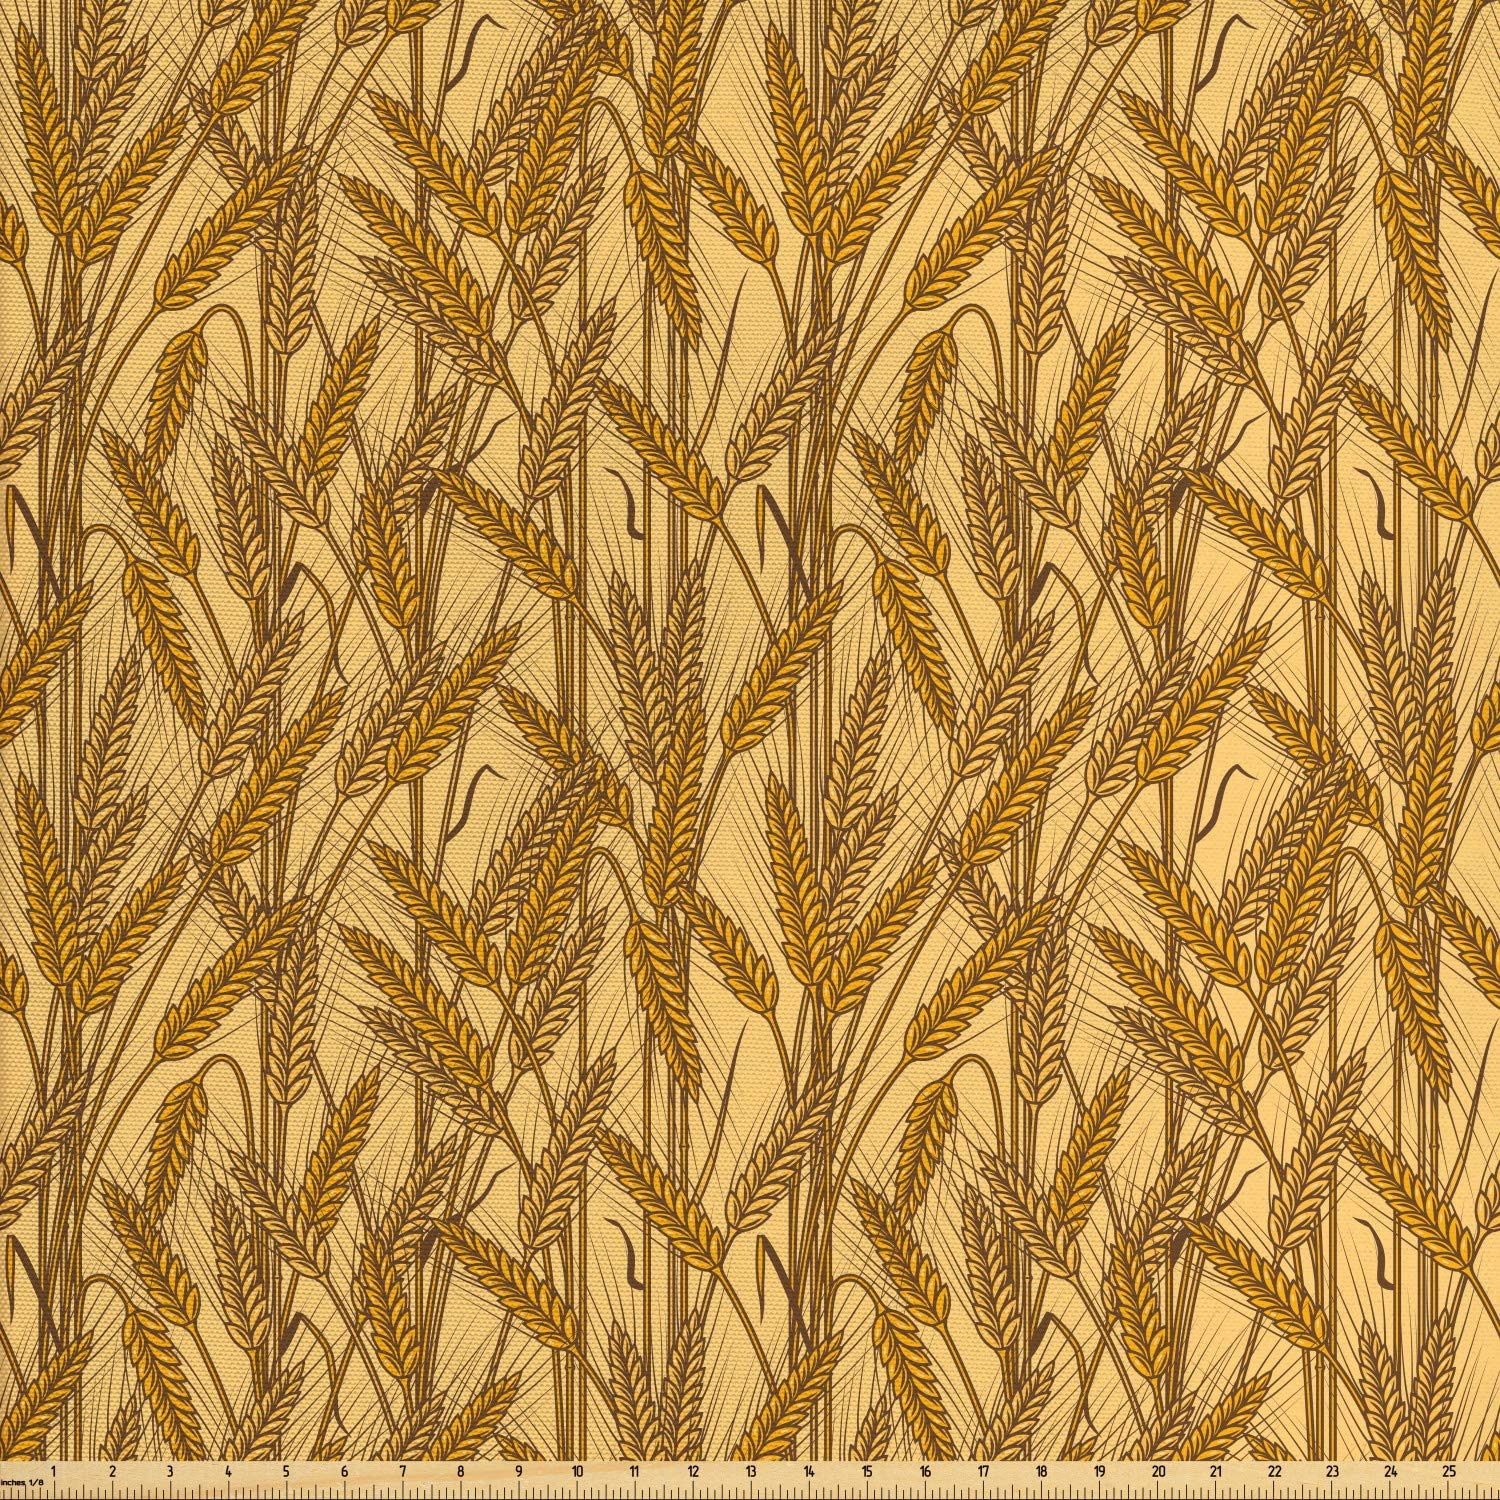 Ambesonne Harvest Fabric by The Yard, Cereal Ears Rural Wheat Rye Field Pattern Agriculture Farmland Country Life, Decorative Fabric for Upholstery and Home Accents, 2 Yards, Mustard Yellow